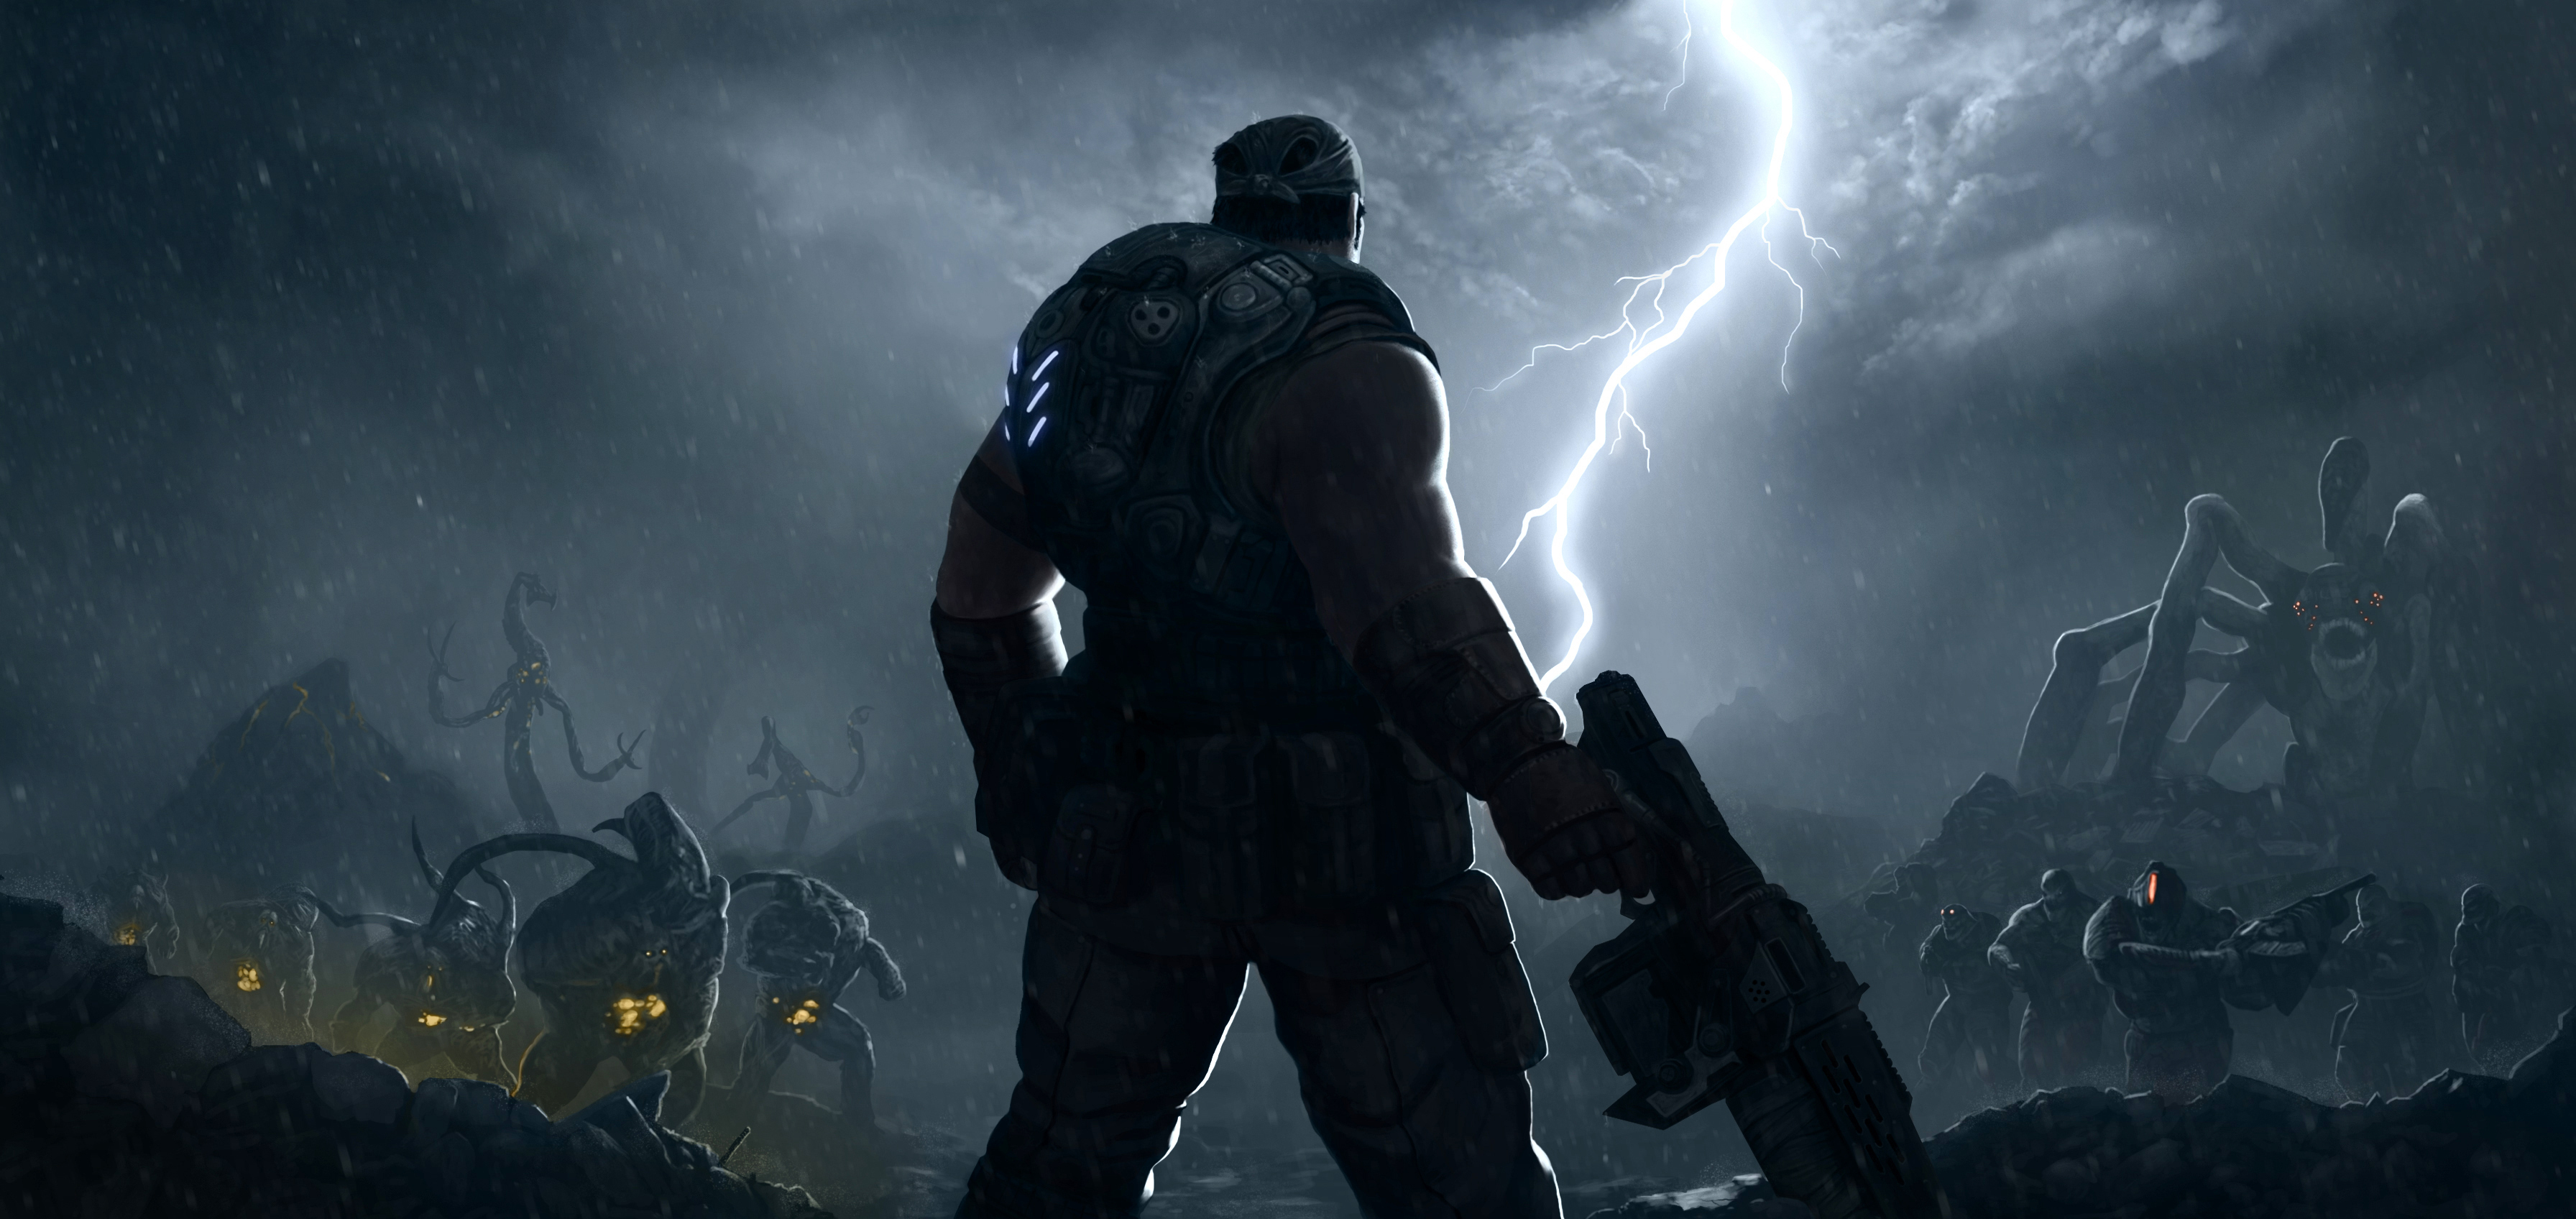 Free Download Gears Of War 3 Wallpaper Hd 3584x1696 For Your